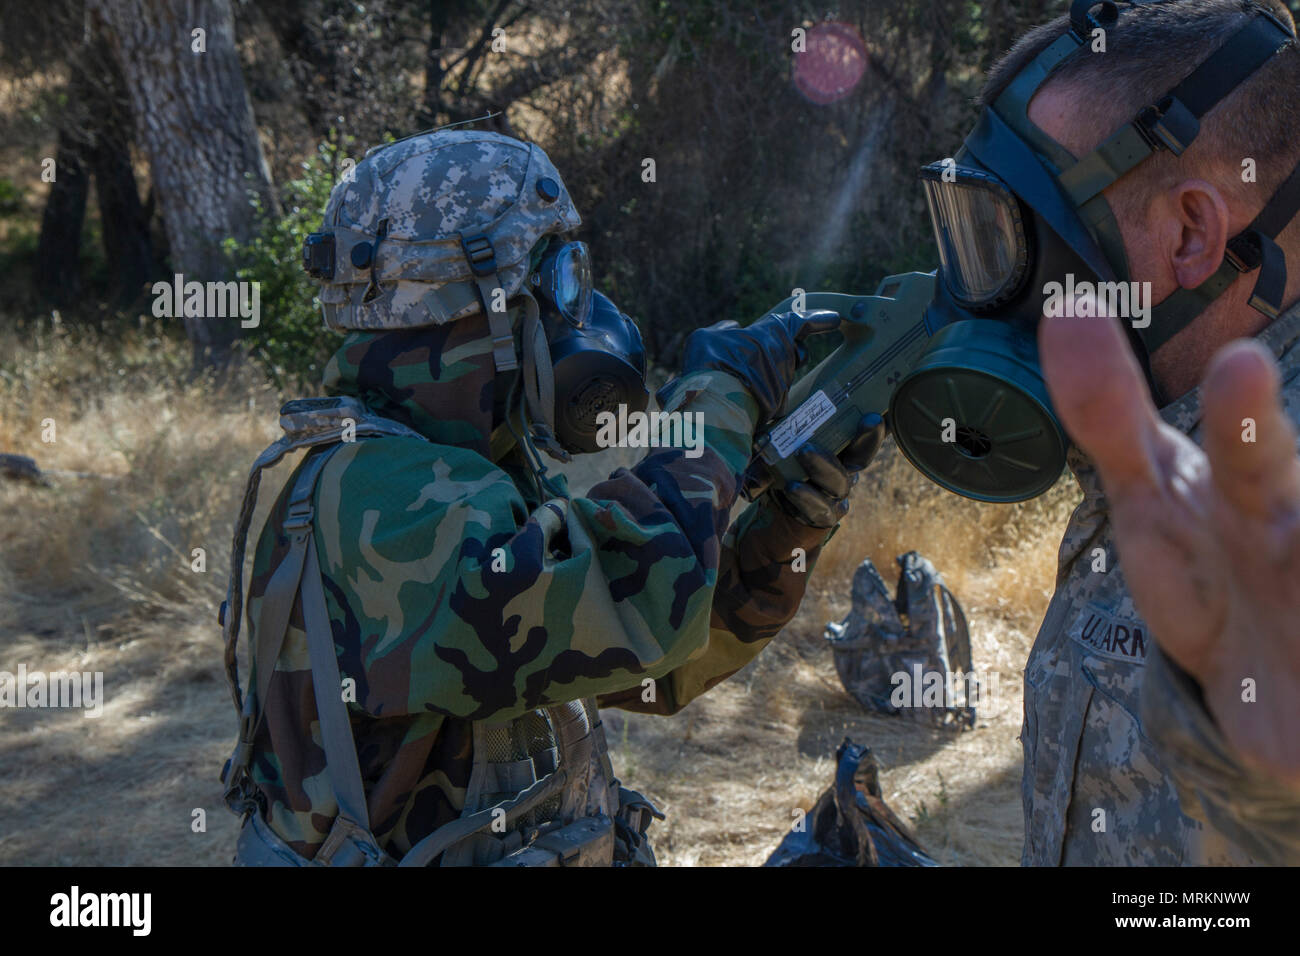 U.S. Army Staff Sgt. Amna Ali uses an Chemical Agent Monitor (CAM) to scan soldiers for agents, during the 91st Training Division's Warrior Exercise, on Fort Hunter Liggett, Calif. June 21, 2017. The CAM detects vapors of chemical agents by sensing molecular ions of specific mobilities (time of flight) and uses timing and microprocessor techniques to reject inferences. It can detect and discriminate between vapors of nerve and blister agents and display the relative concentration. (U.S. Army photo by Spc. Eric Unwin/released) - Stock Image